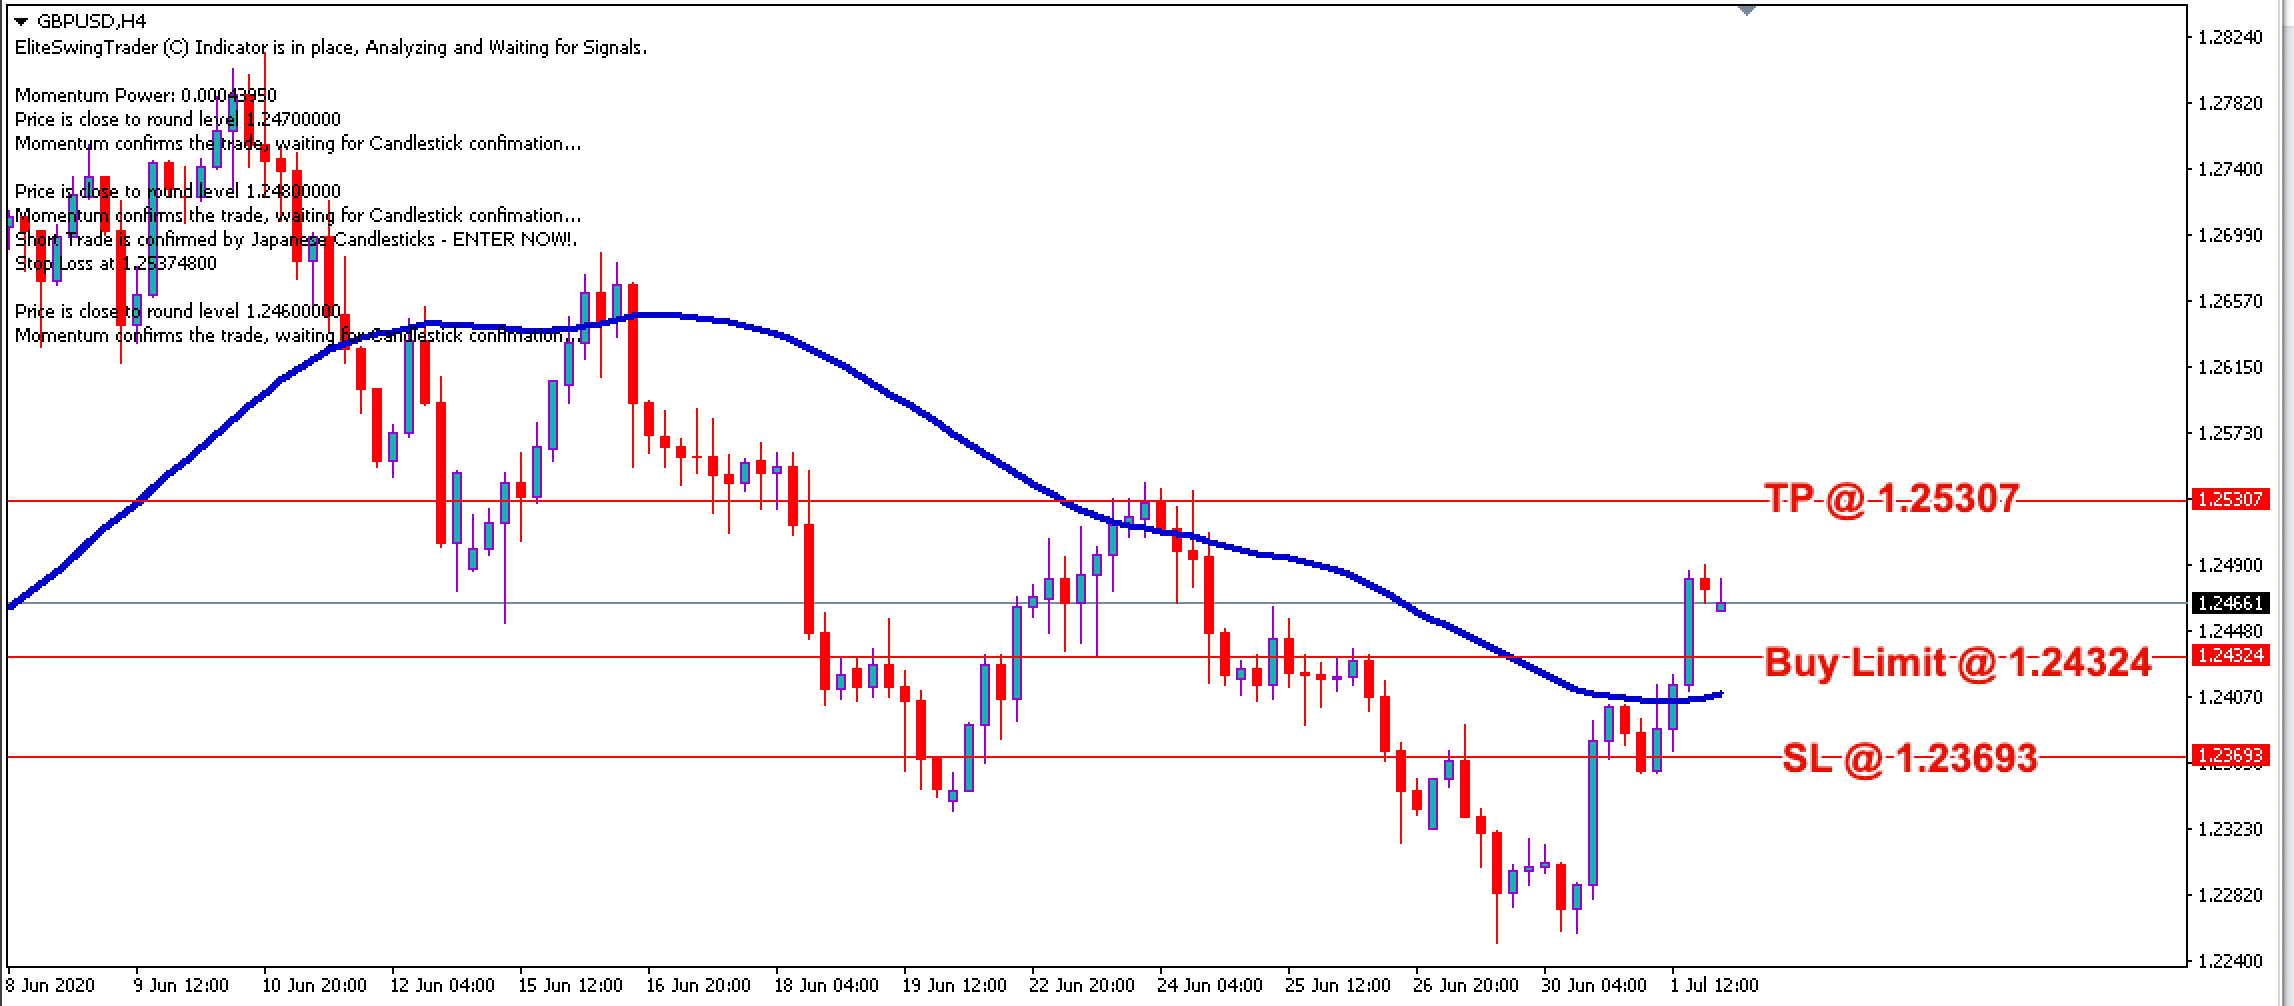 GBP/USD Free Forex Trading Signals - 2nd July 2020